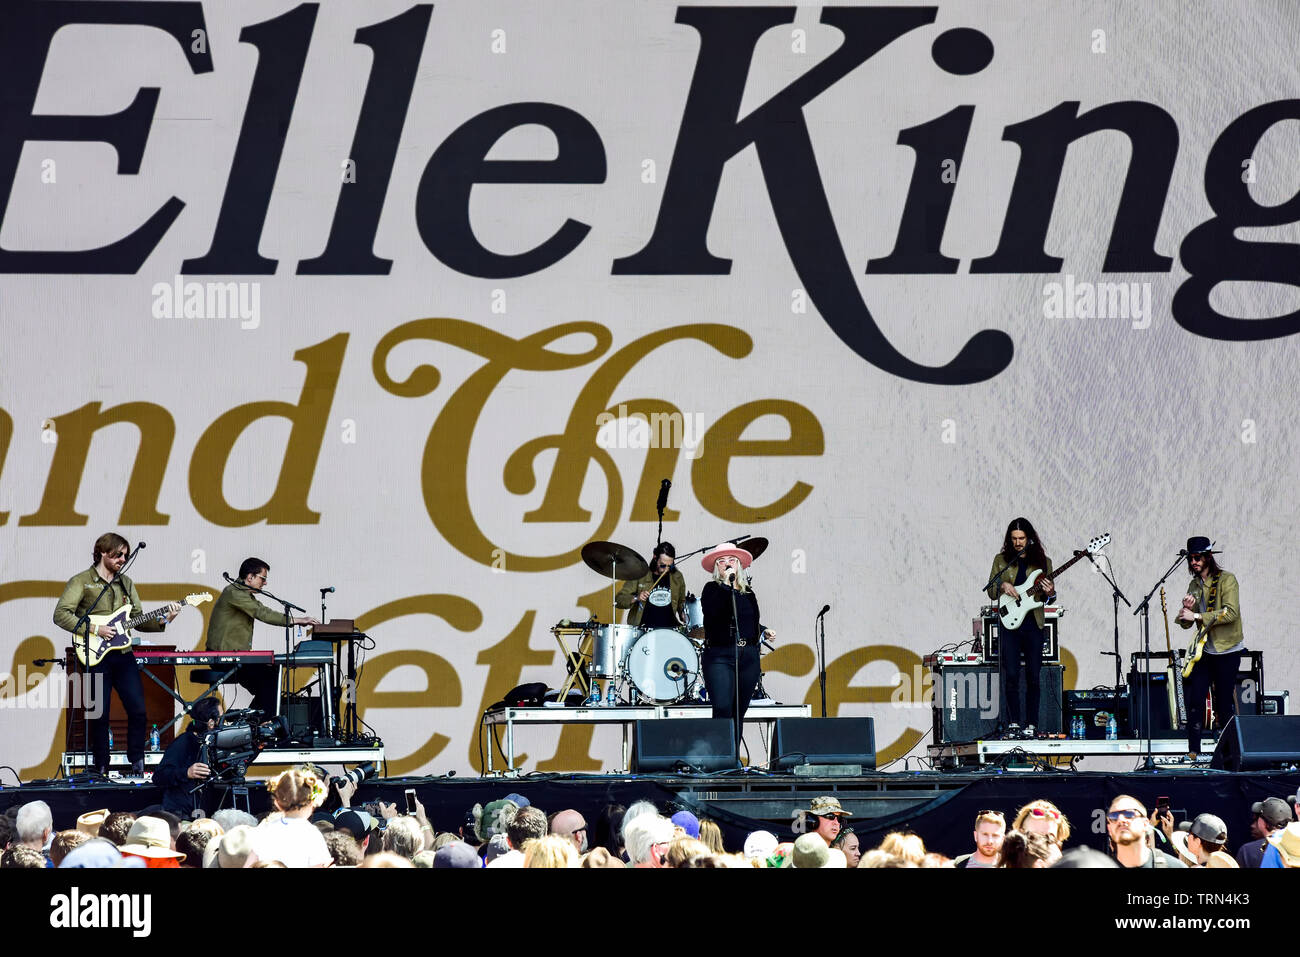 Napa, California, May 25, 2019, Elle King on stage at the 2019 Bottle Rock Festival. Stock Photo